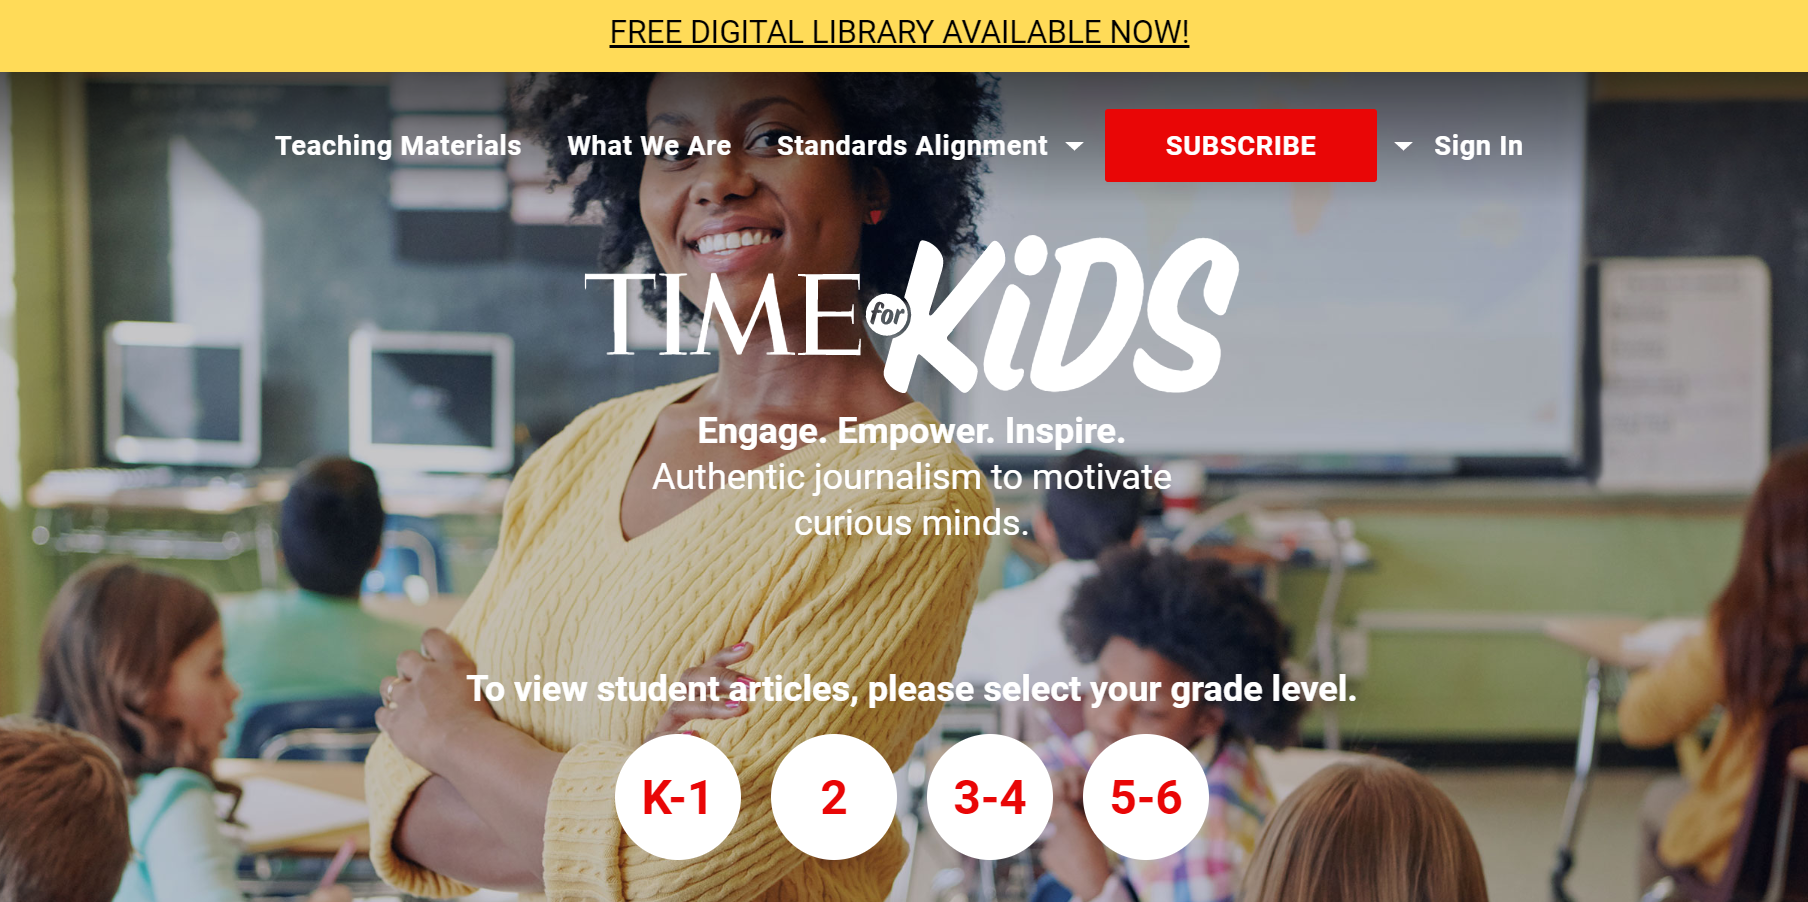 Time for kids is Free